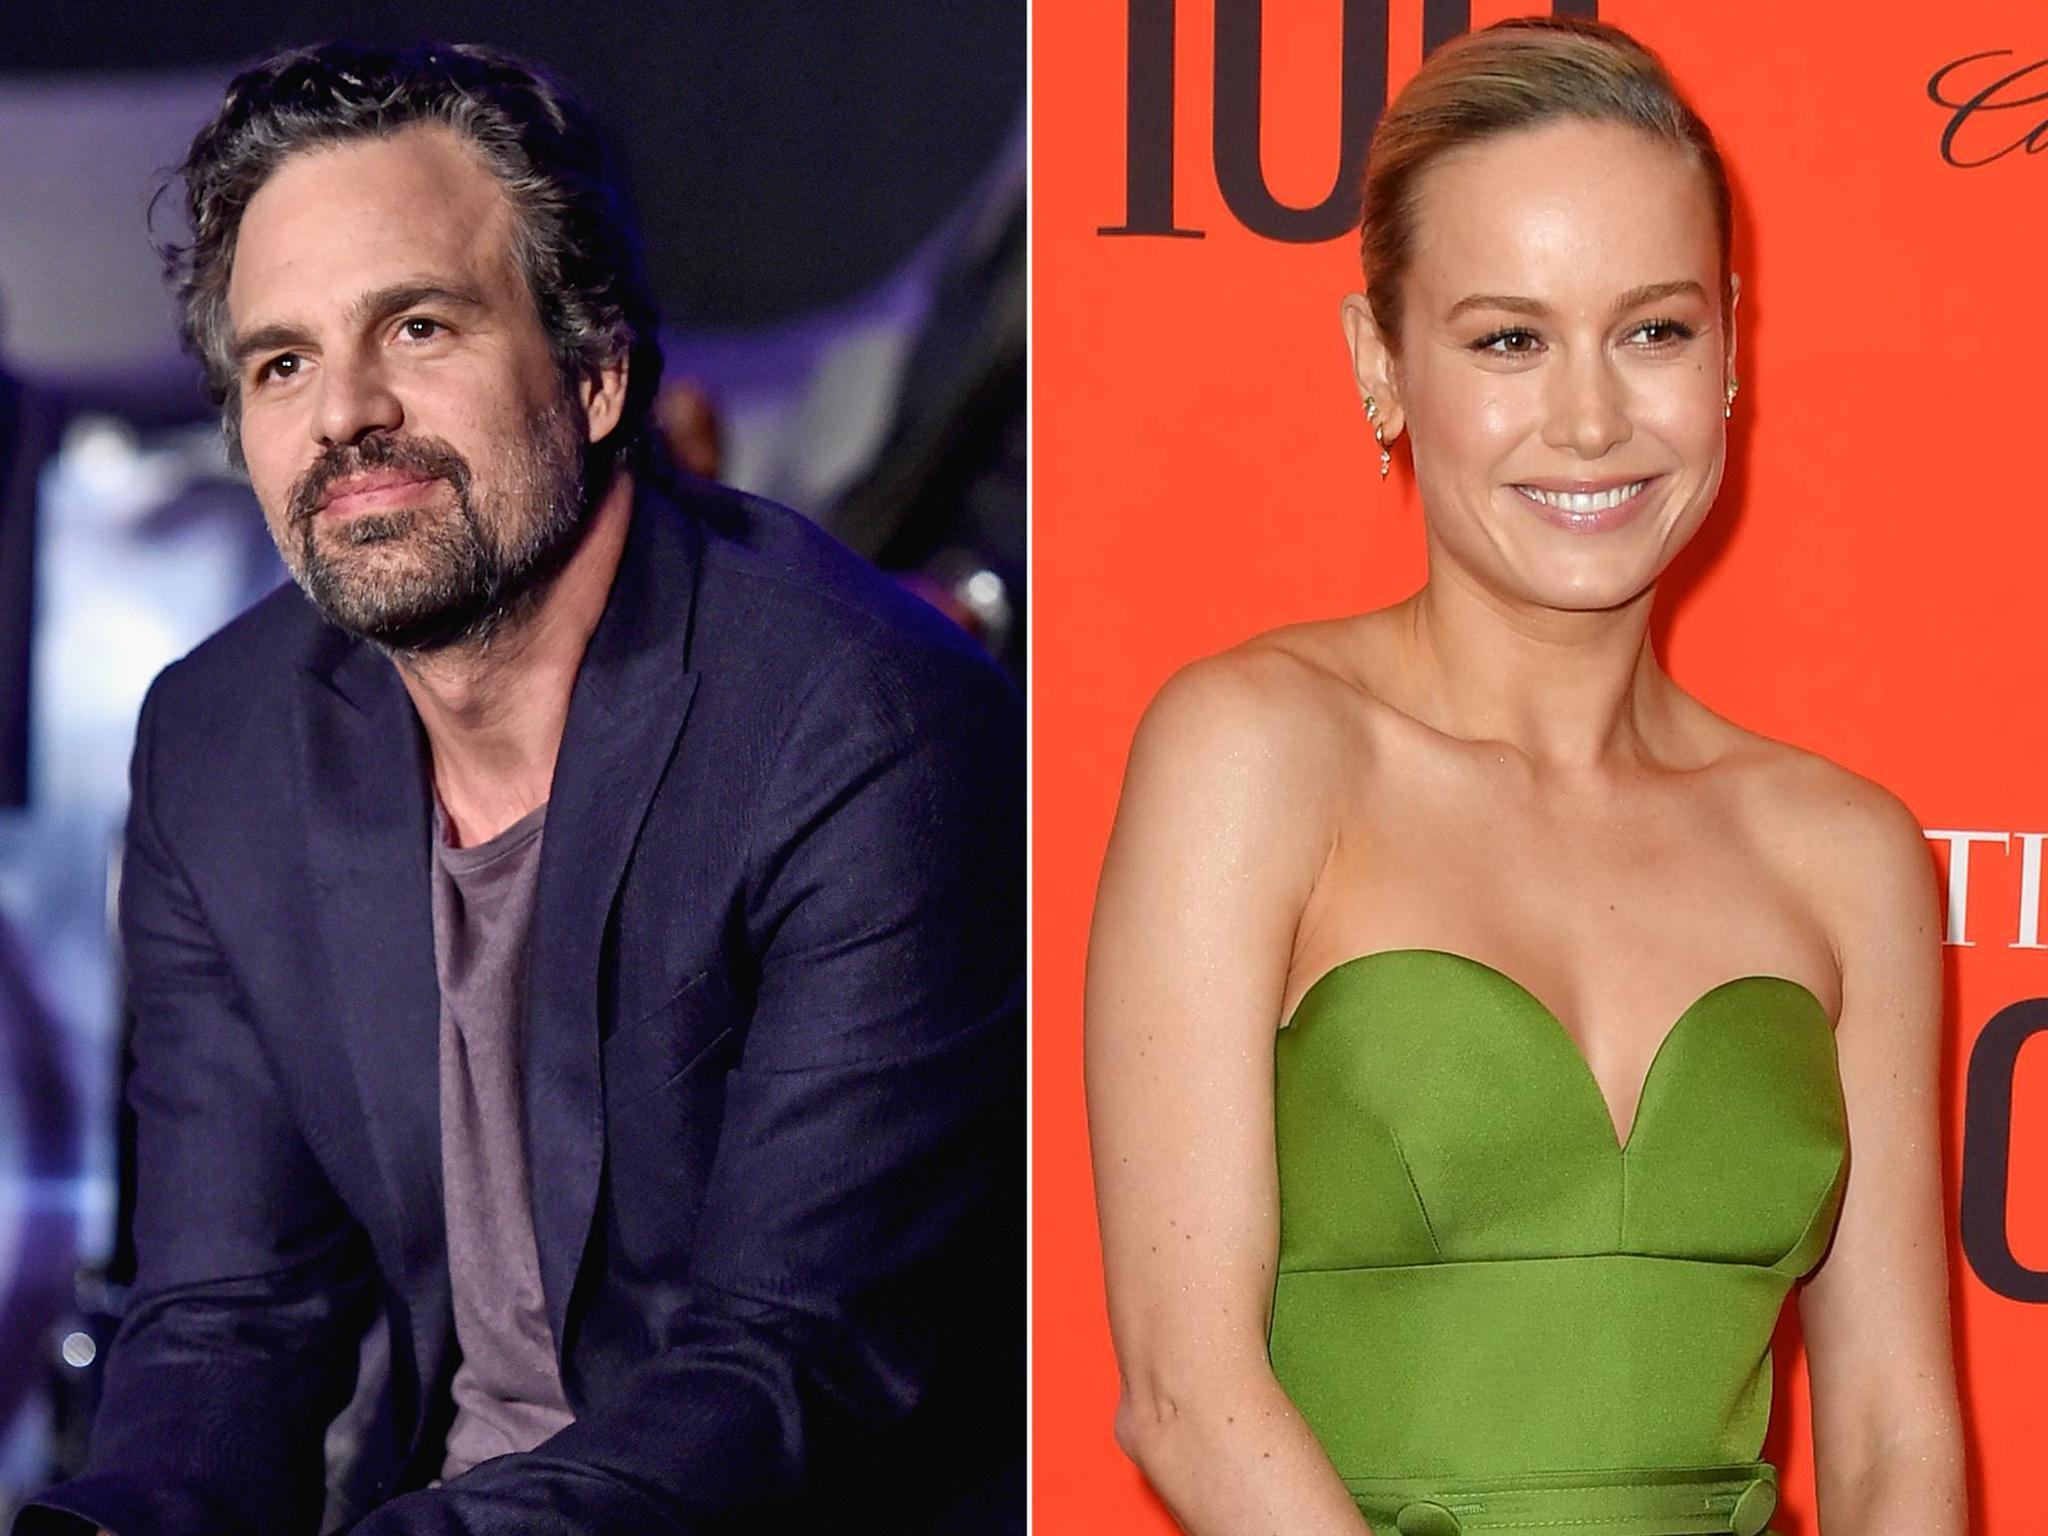 Mark Ruffalo discovers he'd already starred in a film with Brie Larson before Avengers